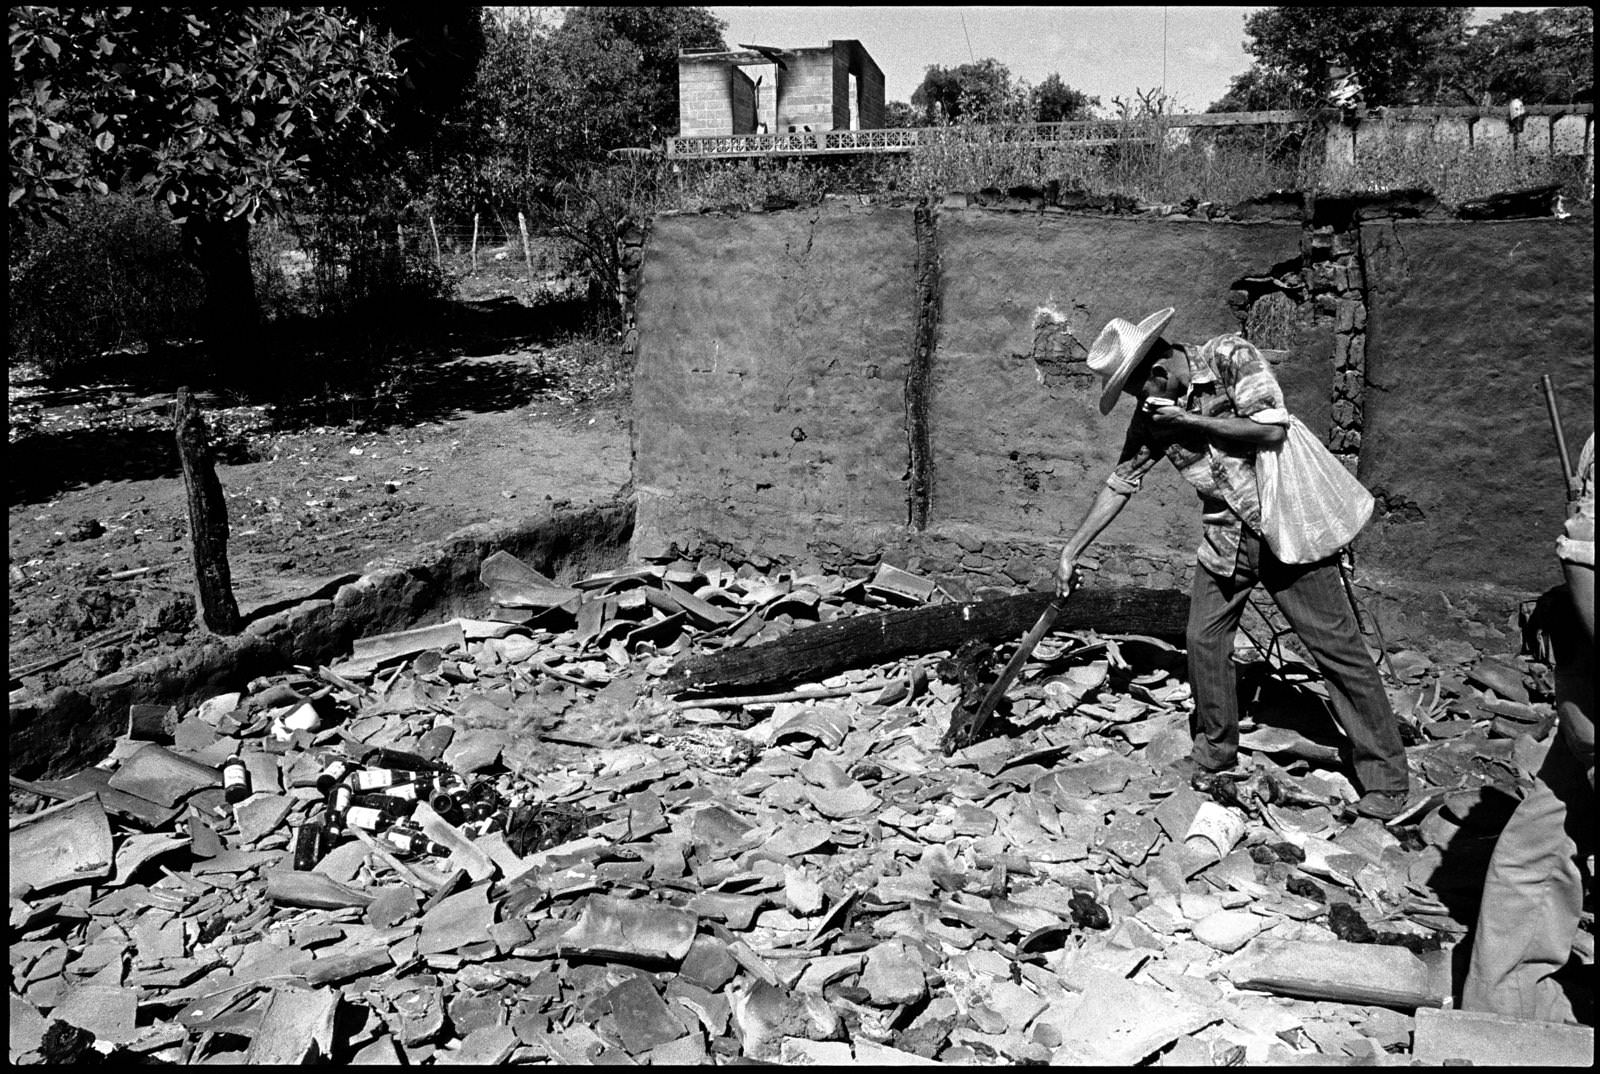 A man looks through the remains of a church in El Mozote in January of 1982, months after the massacre